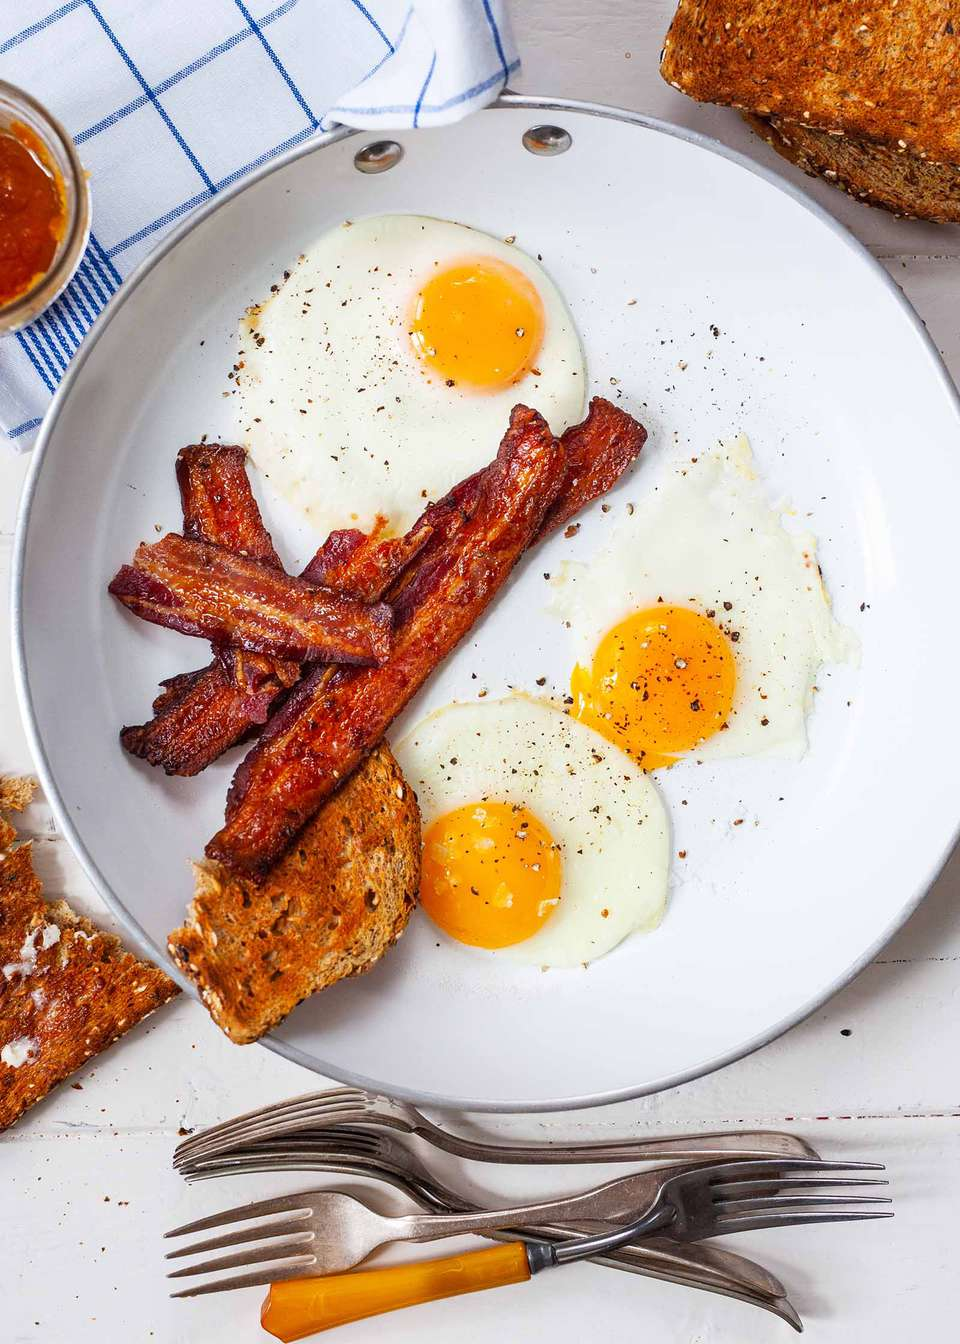 Over easy eggs on a plate with a side of bacon.